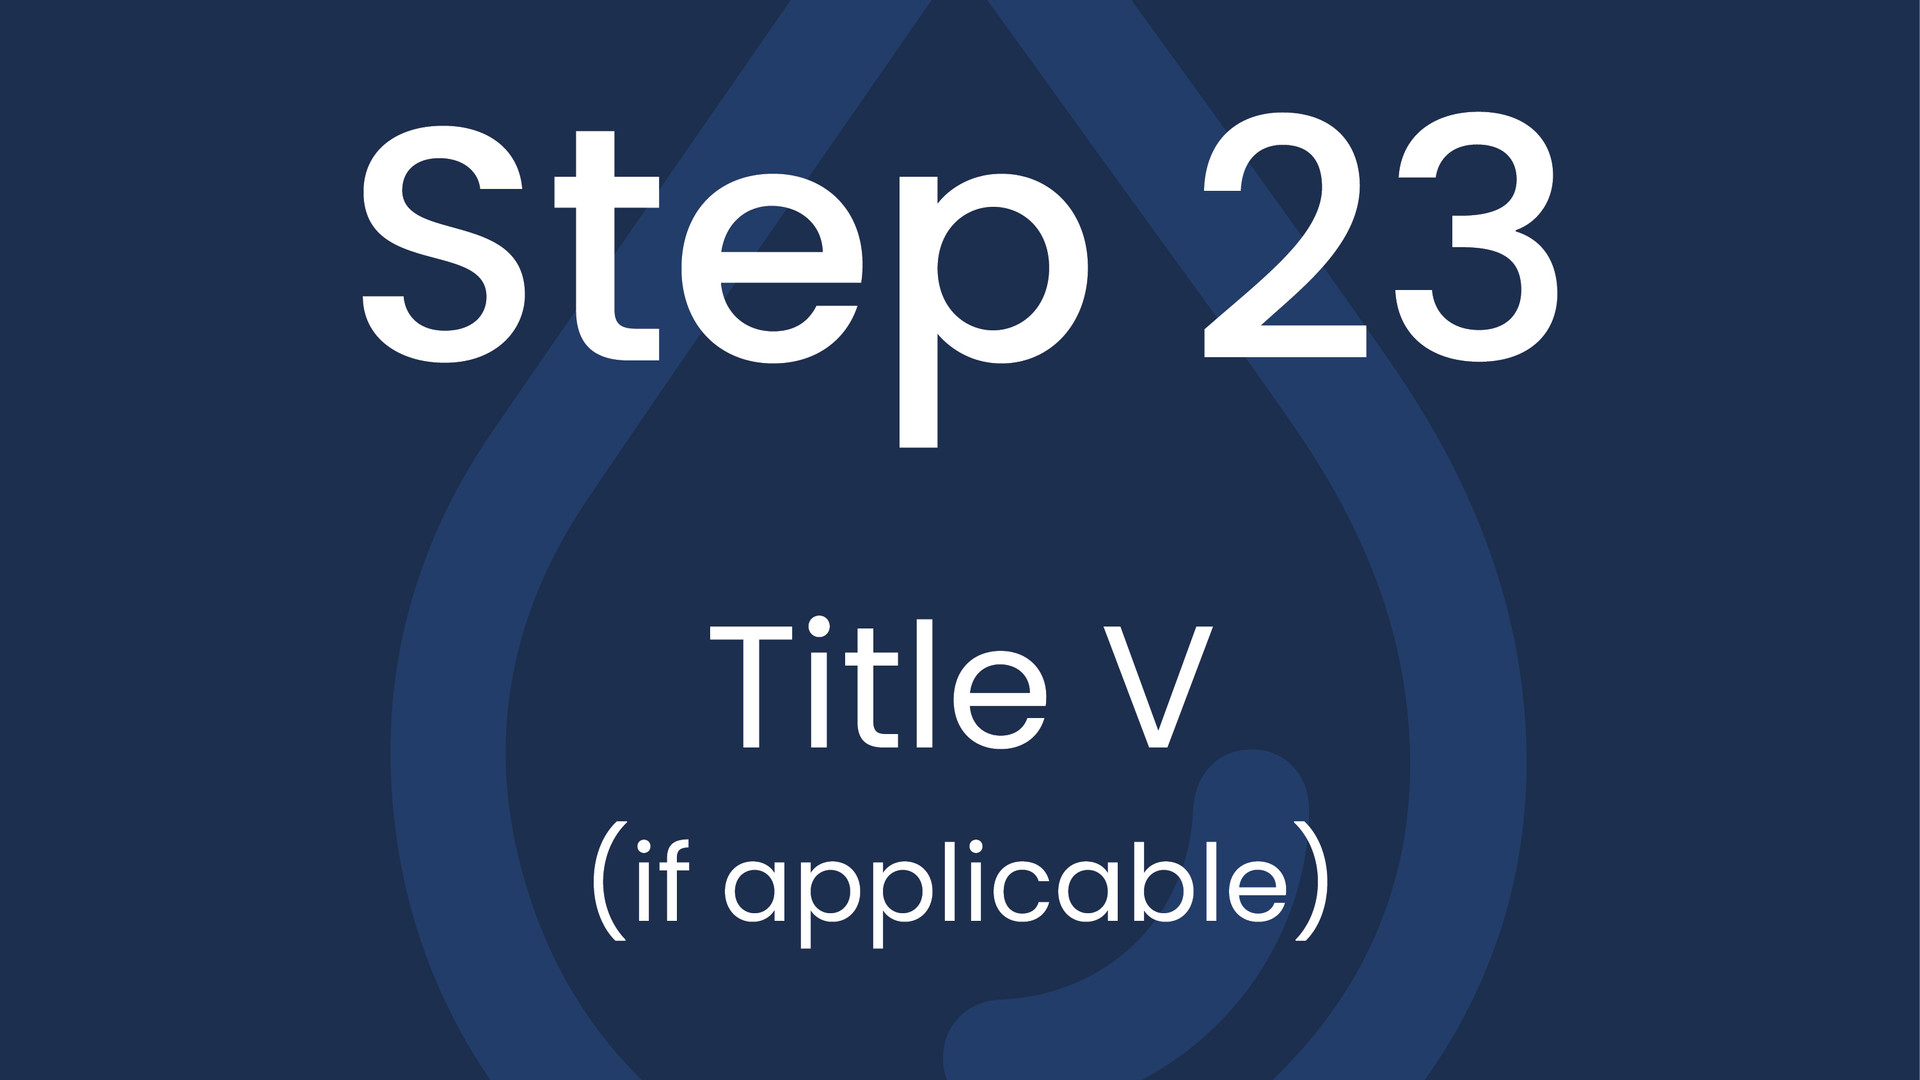 Step 23: Title V (if applicable)